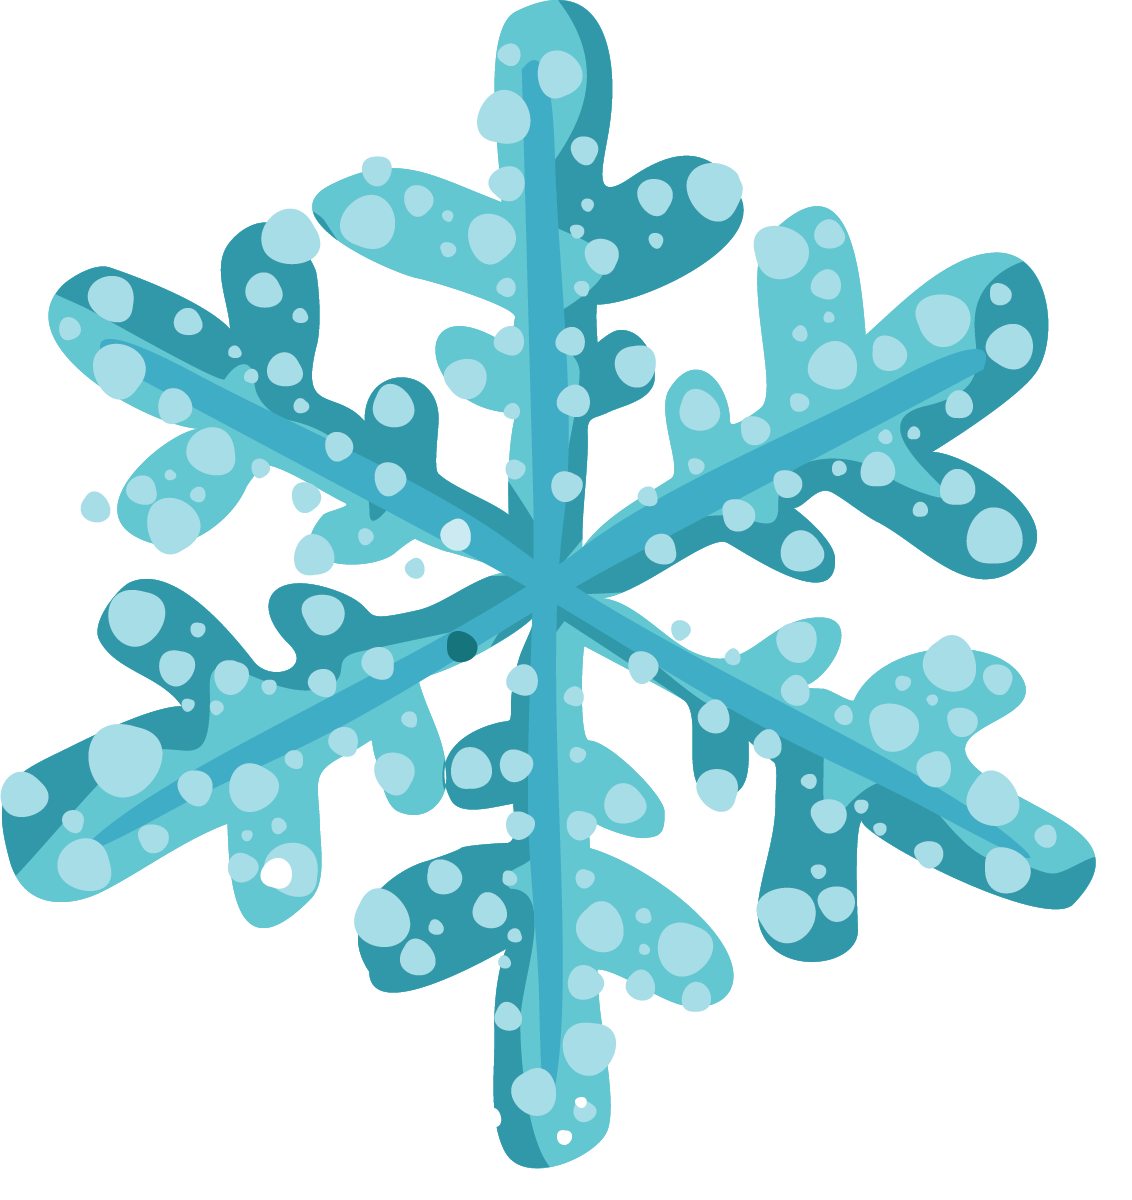 Dot clipart snow. Free falling cliparts download